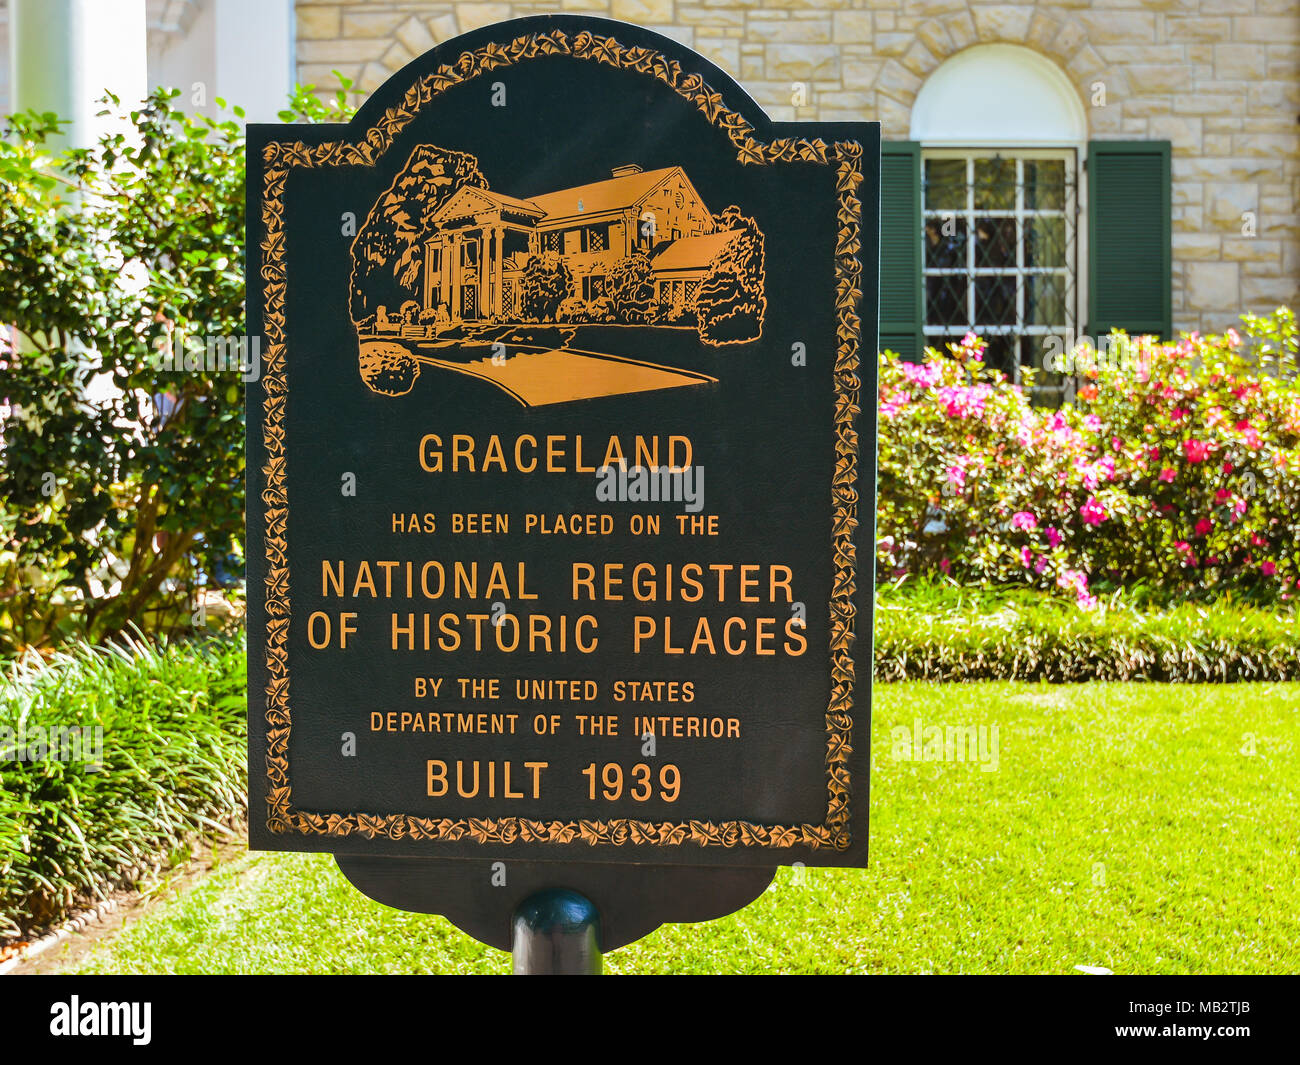 Memphis, TN - Marker in front of Elvis Presley's Graceland mansion indicating that the property is listed in the National Register of Historic Places. Stock Photo